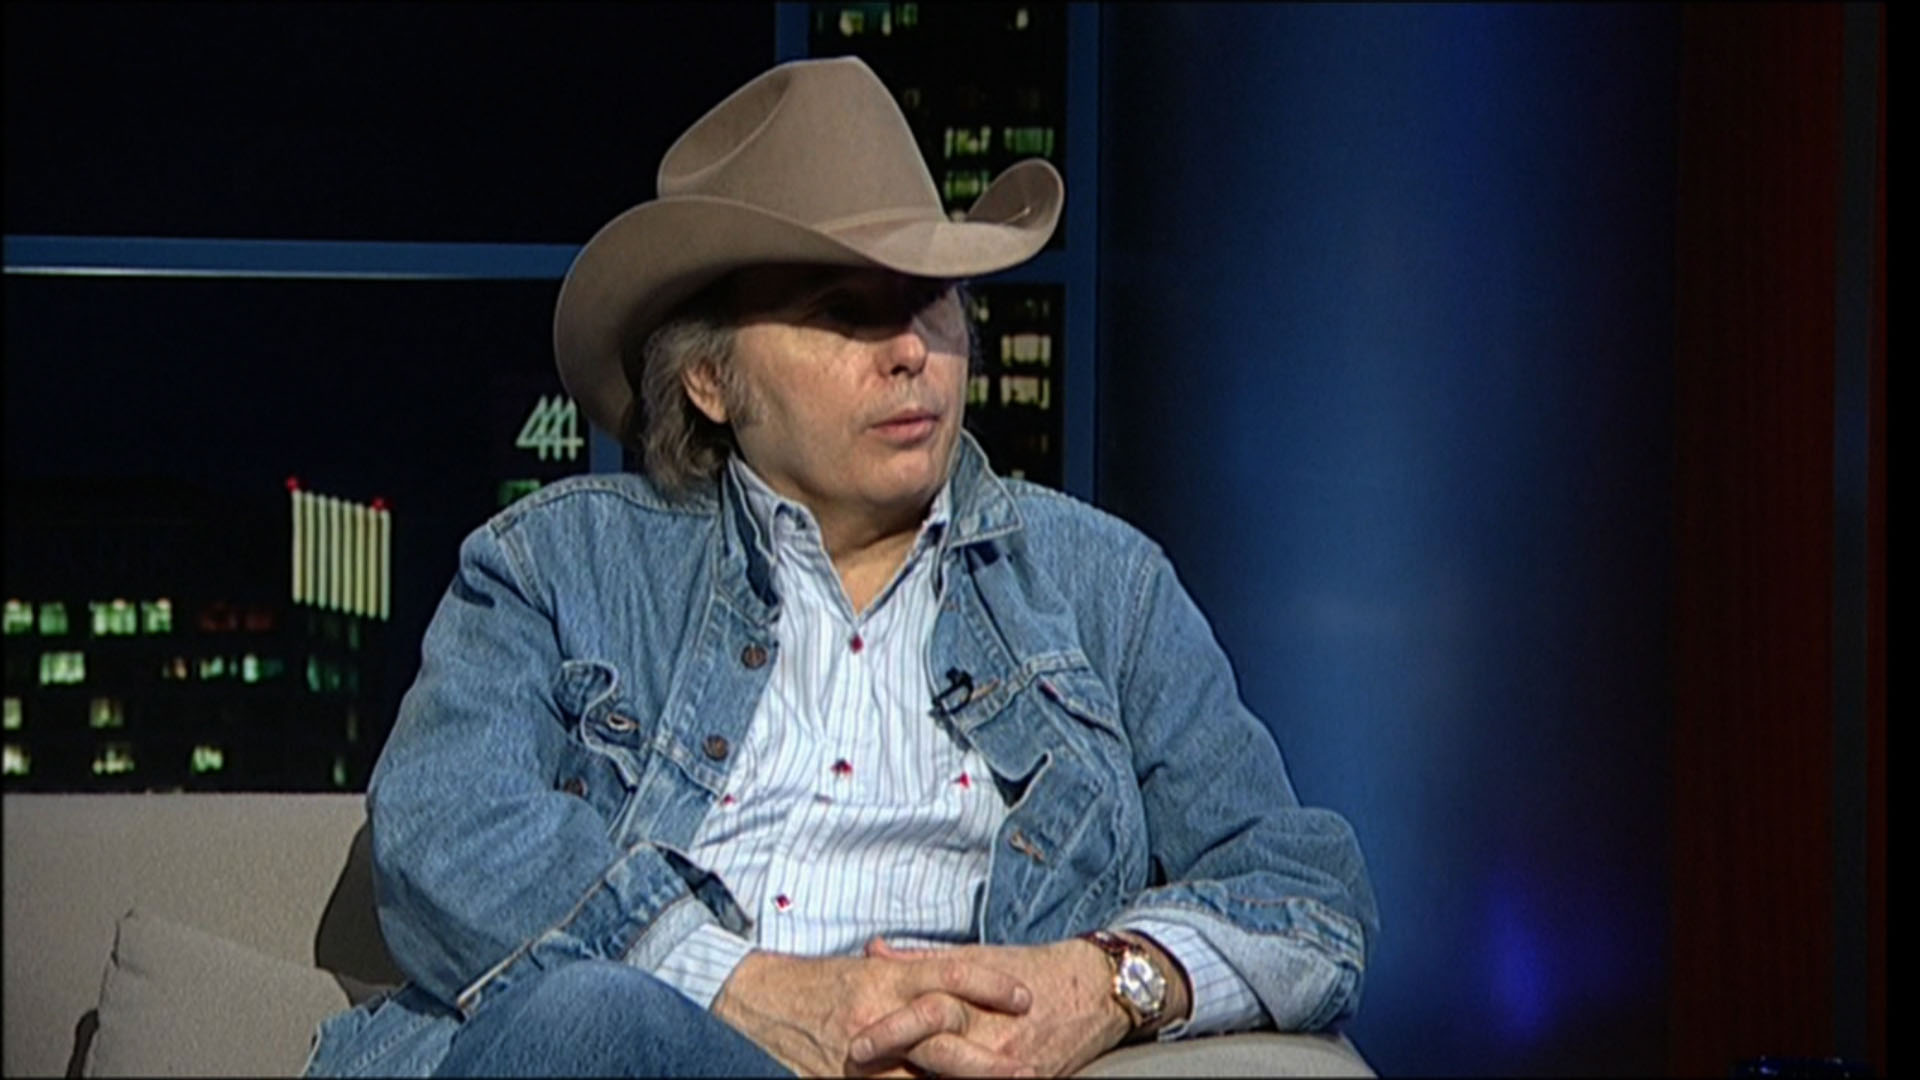 Dwight Yoakam Celebrity Wallpaper HD Wallpaper